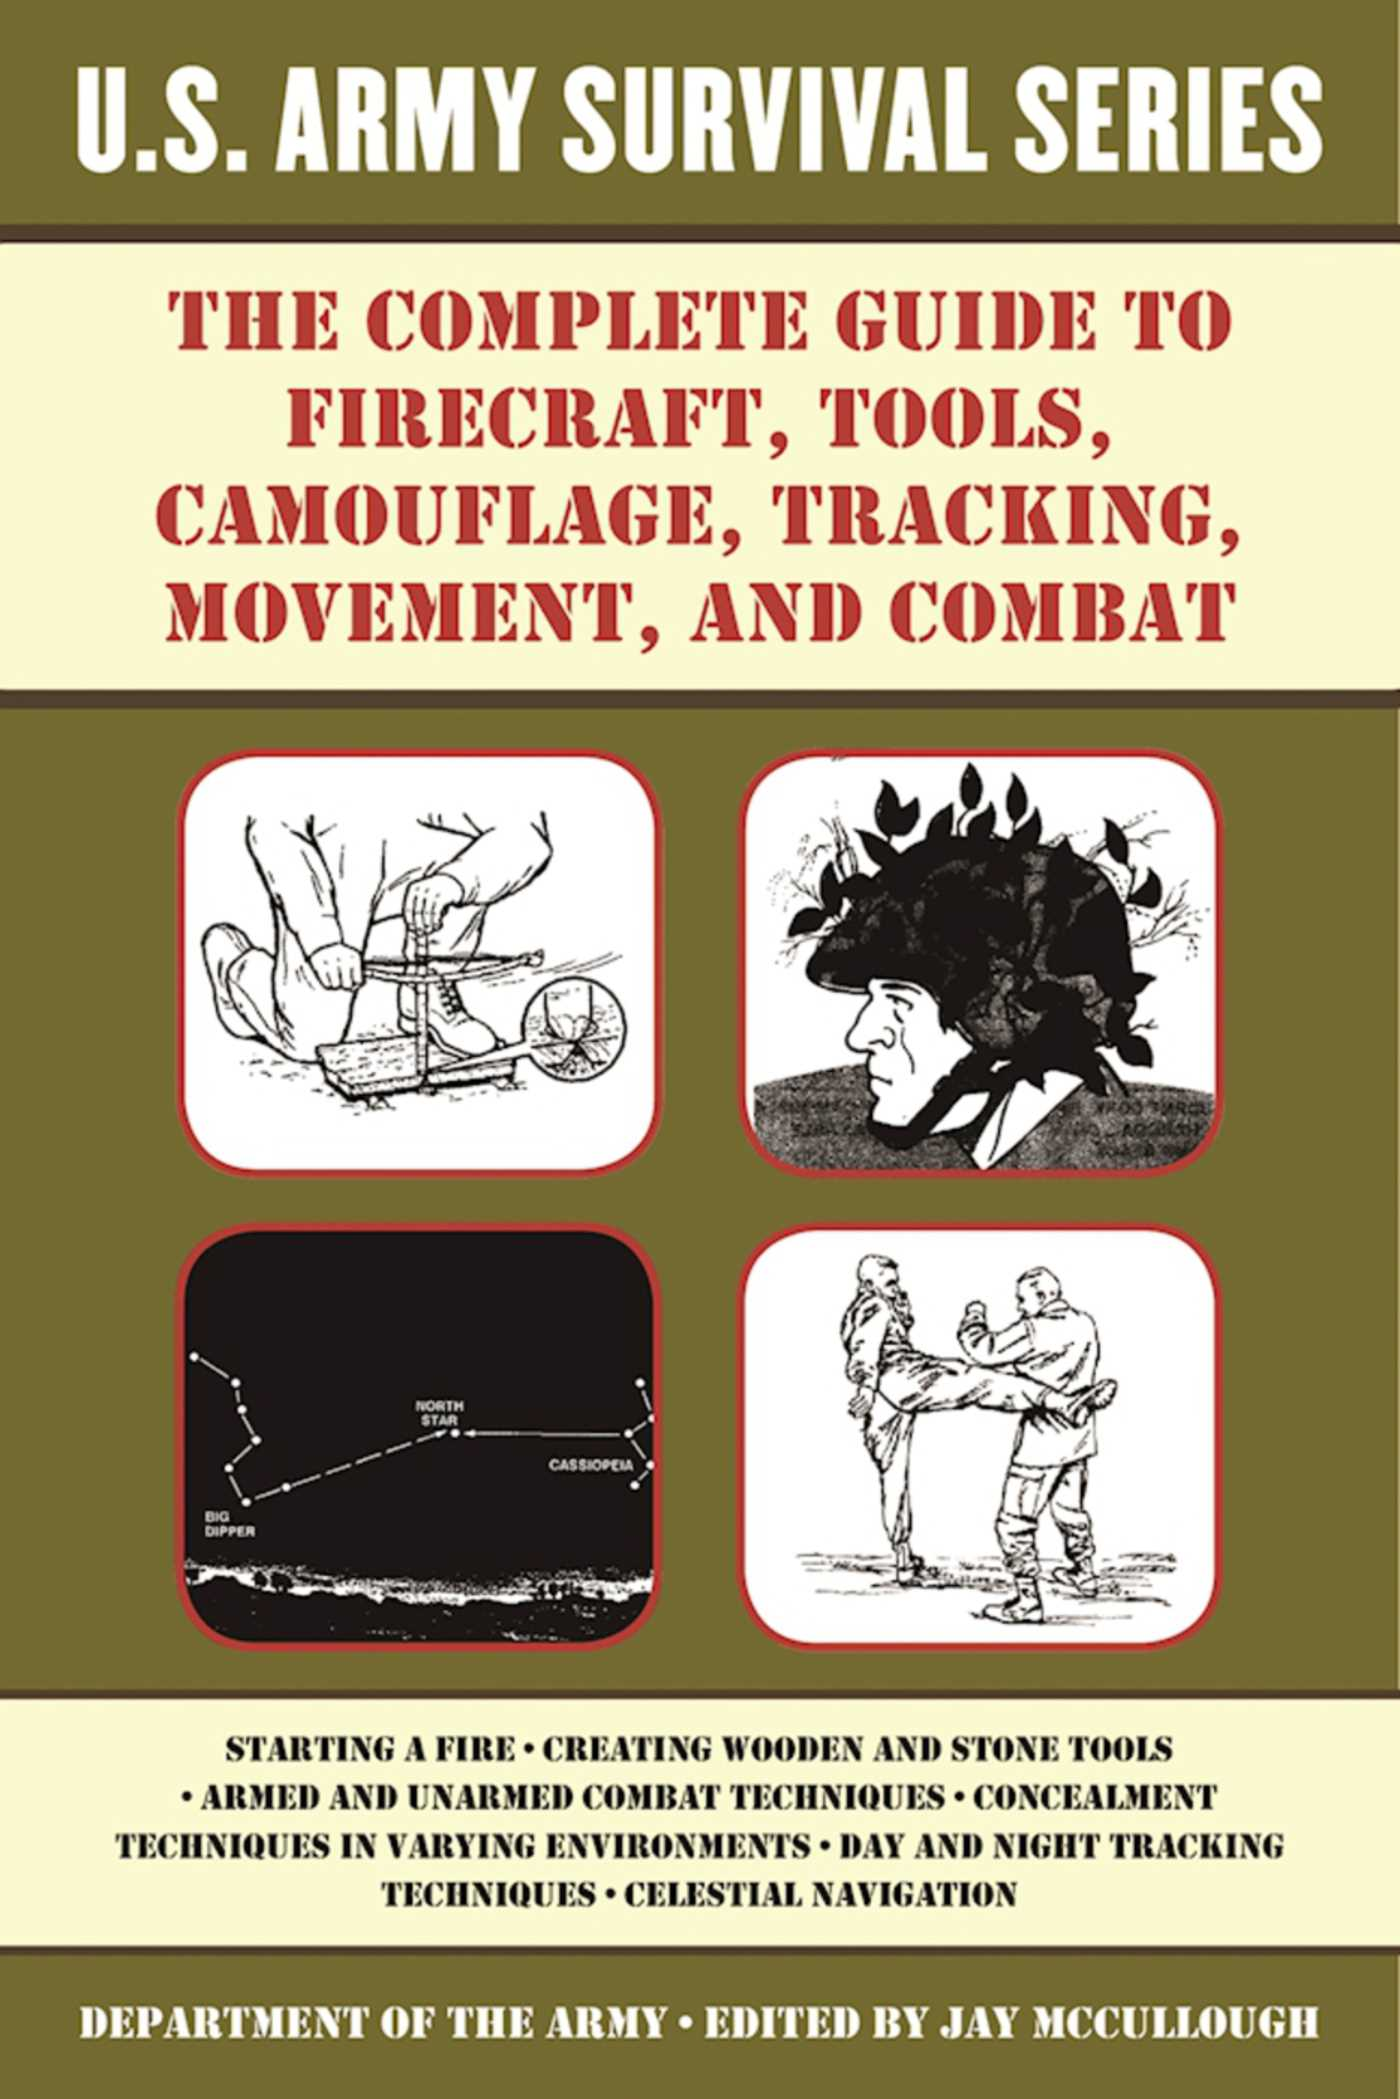 Book Cover Image (jpg): The Complete U.S. Army Survival Guide to Firecraft,  Tools, Camouflage, Tracking, Movement, and Combat